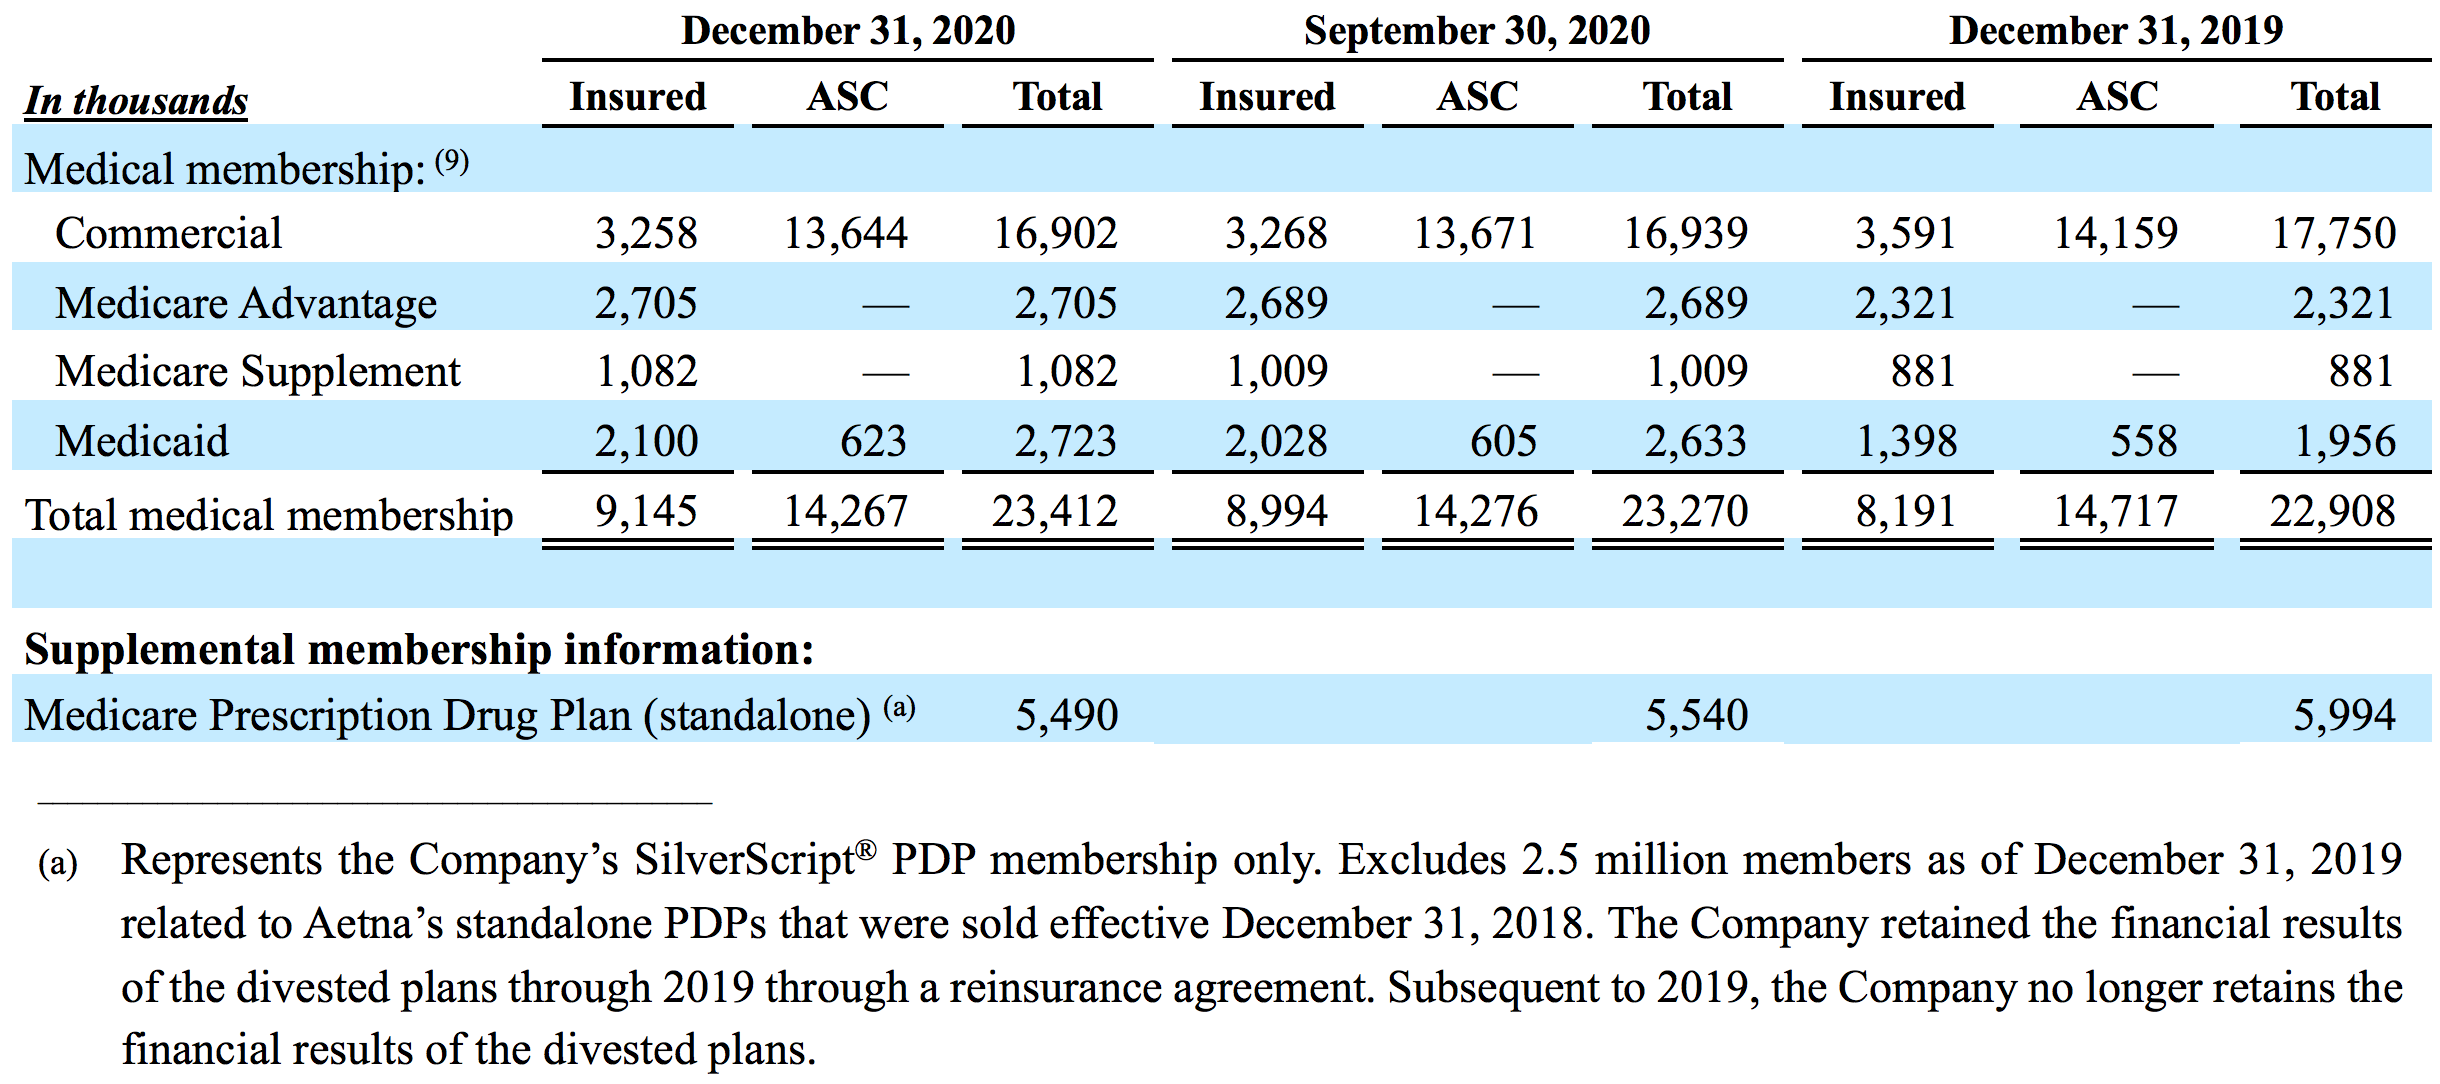 Table: Summary of the Health Care Benefits segment's medical membership for the respective periods